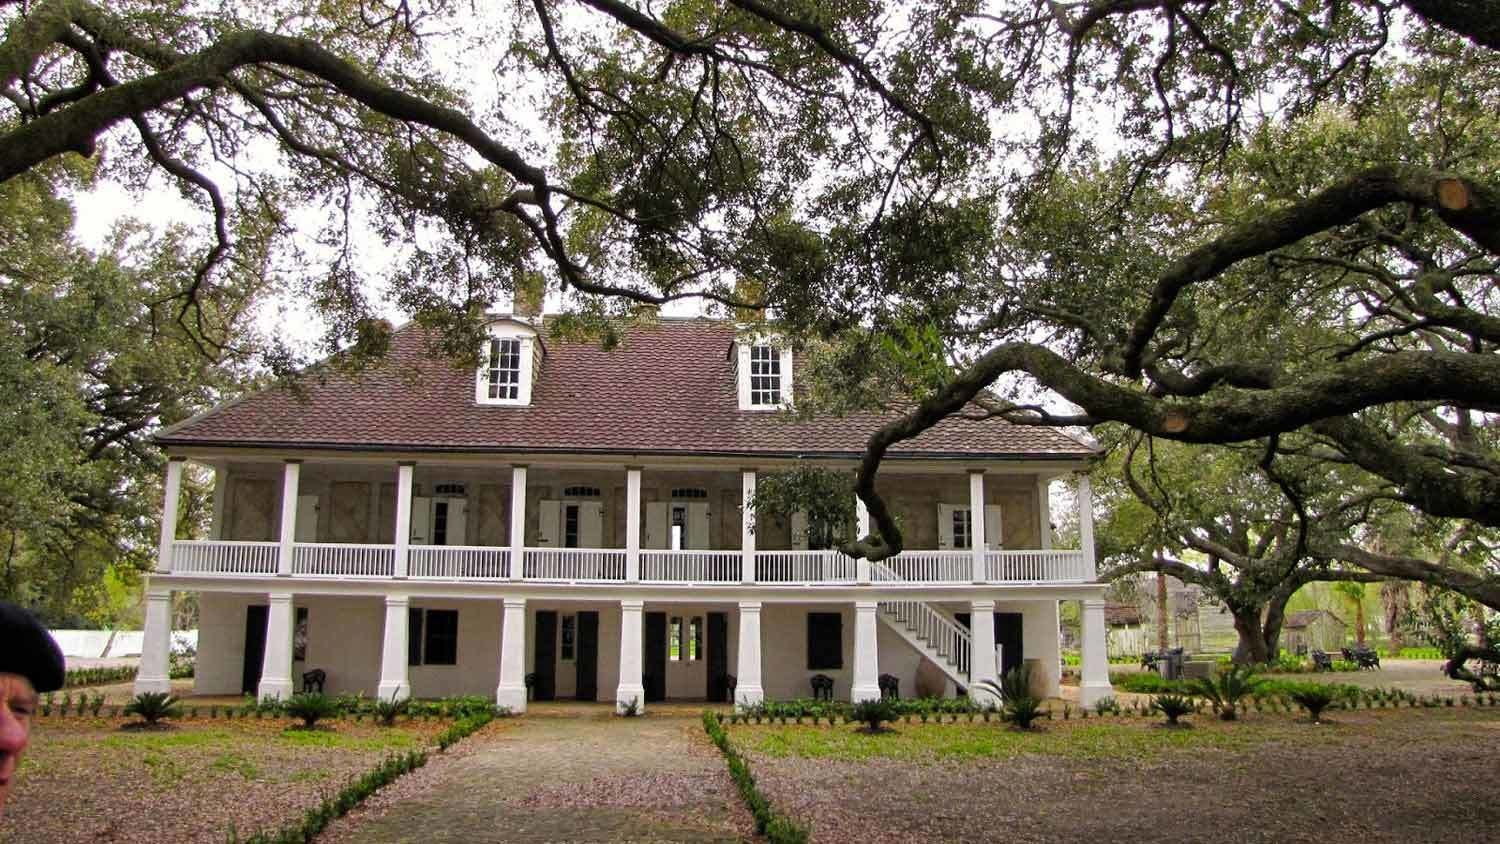 Plantation house and front yard